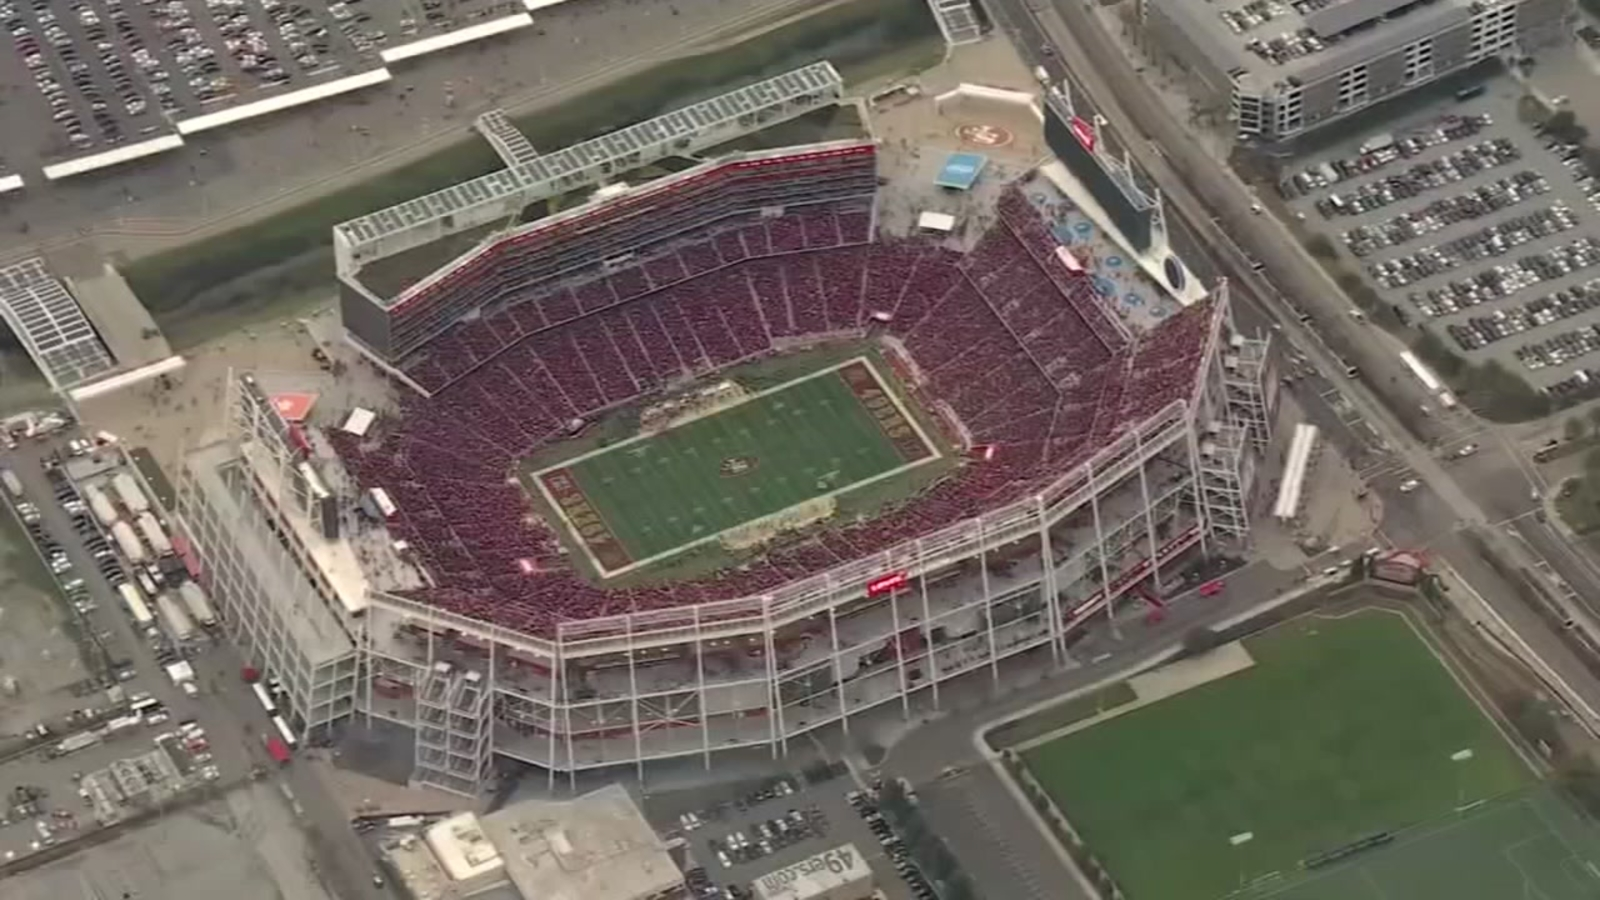 49ers Fans Debate Location Of Possible Super Bowl 2020 Parade Team Plays On Feb 2